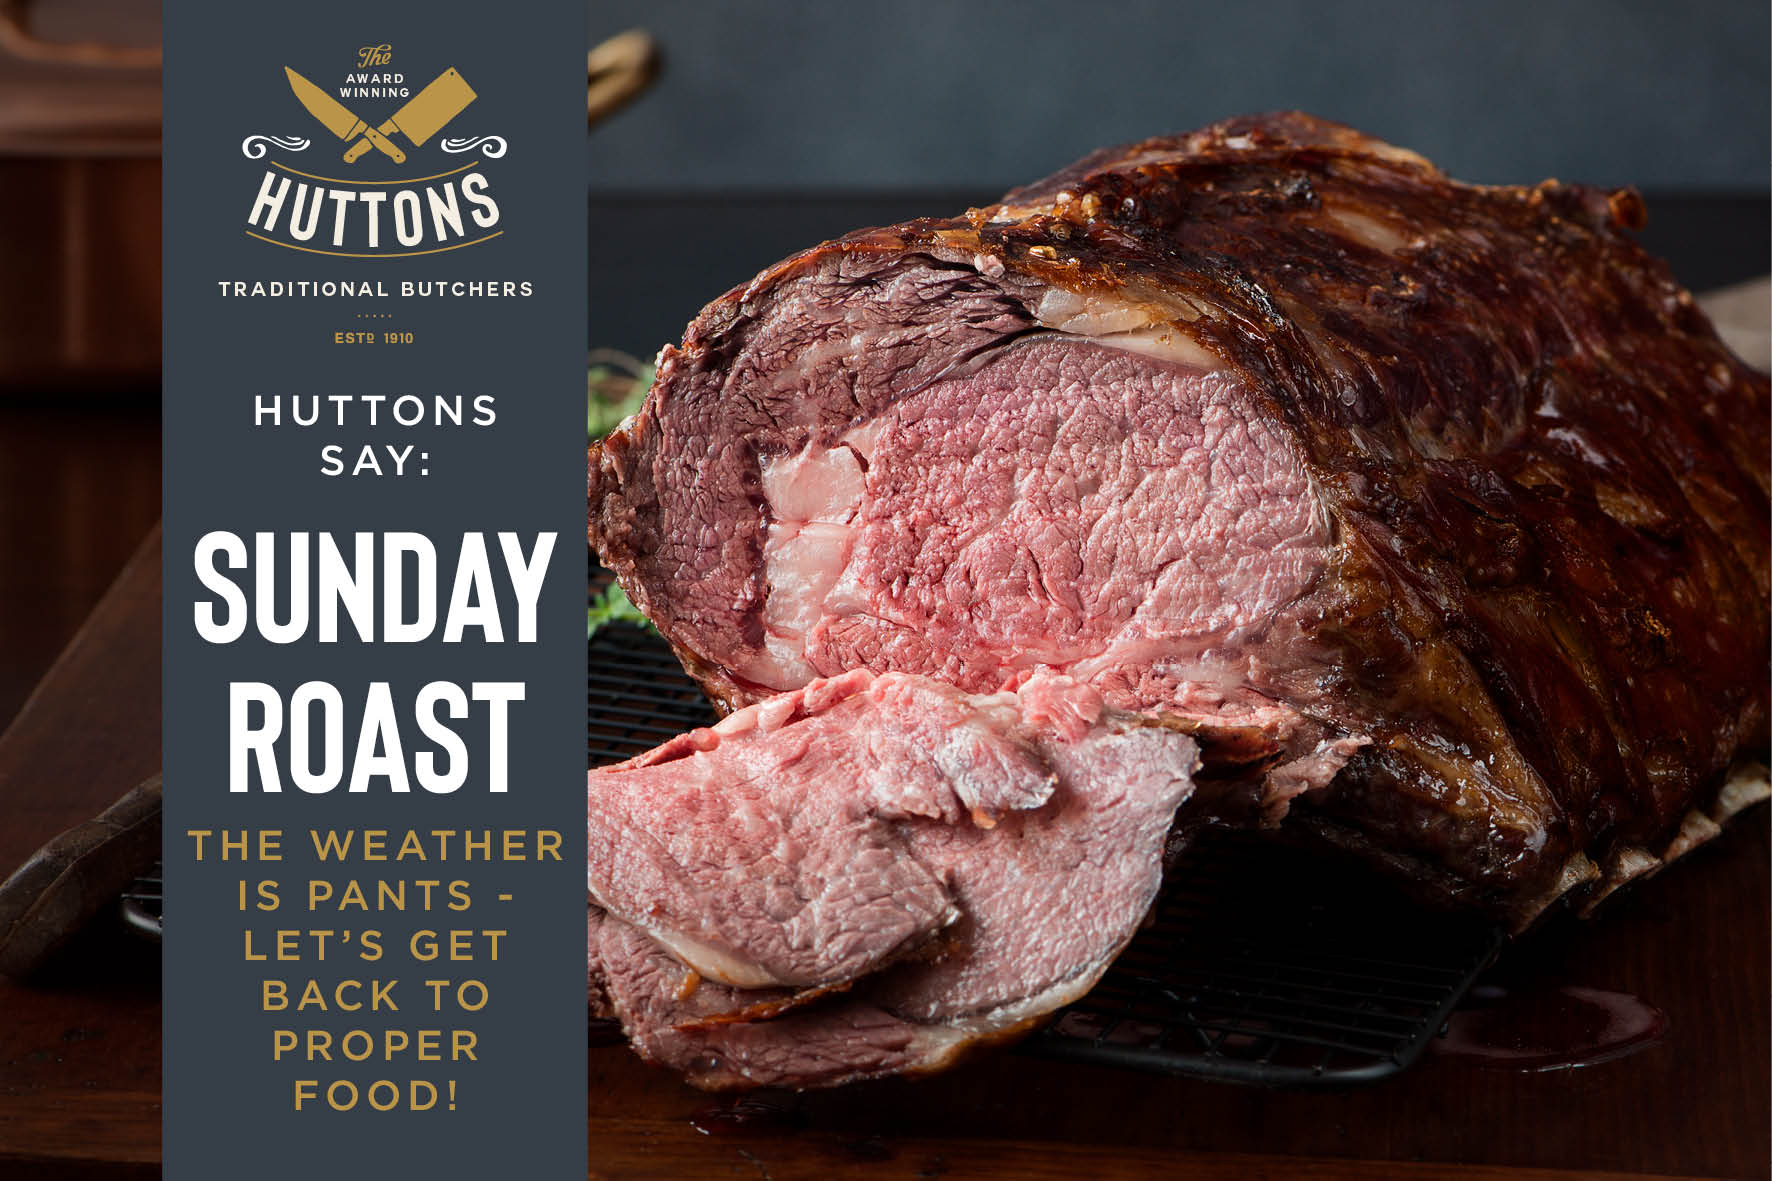 huttons_butchers_roast.jpg